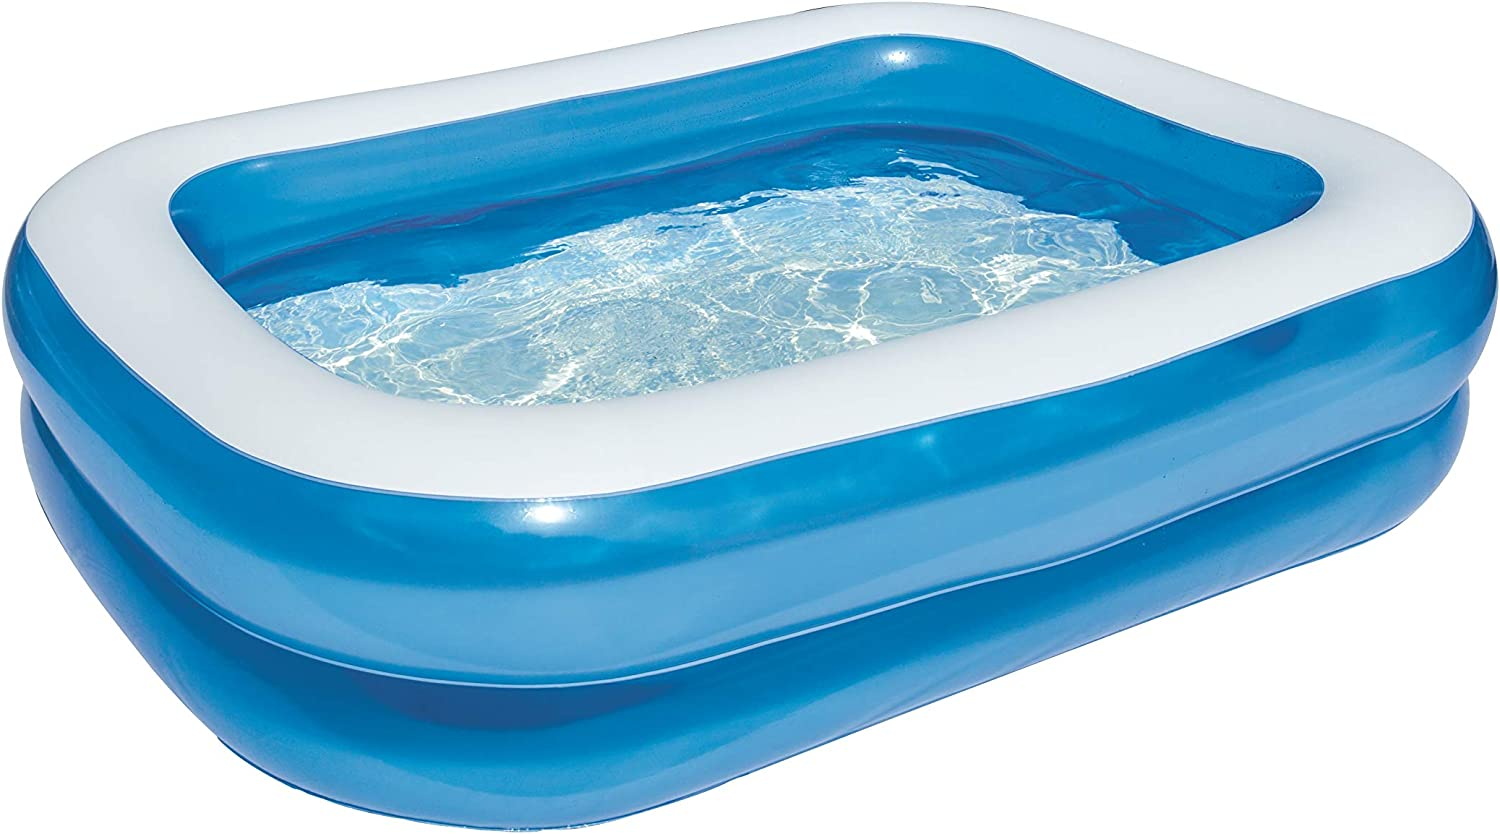 Bestway 54005 - Piscina Hinchable Infantil Blue Rectangular 201x150x51 cm: Bestway 79 x 59 x 20-inches Rectangular Family Pool: Amazon.es: Jardín